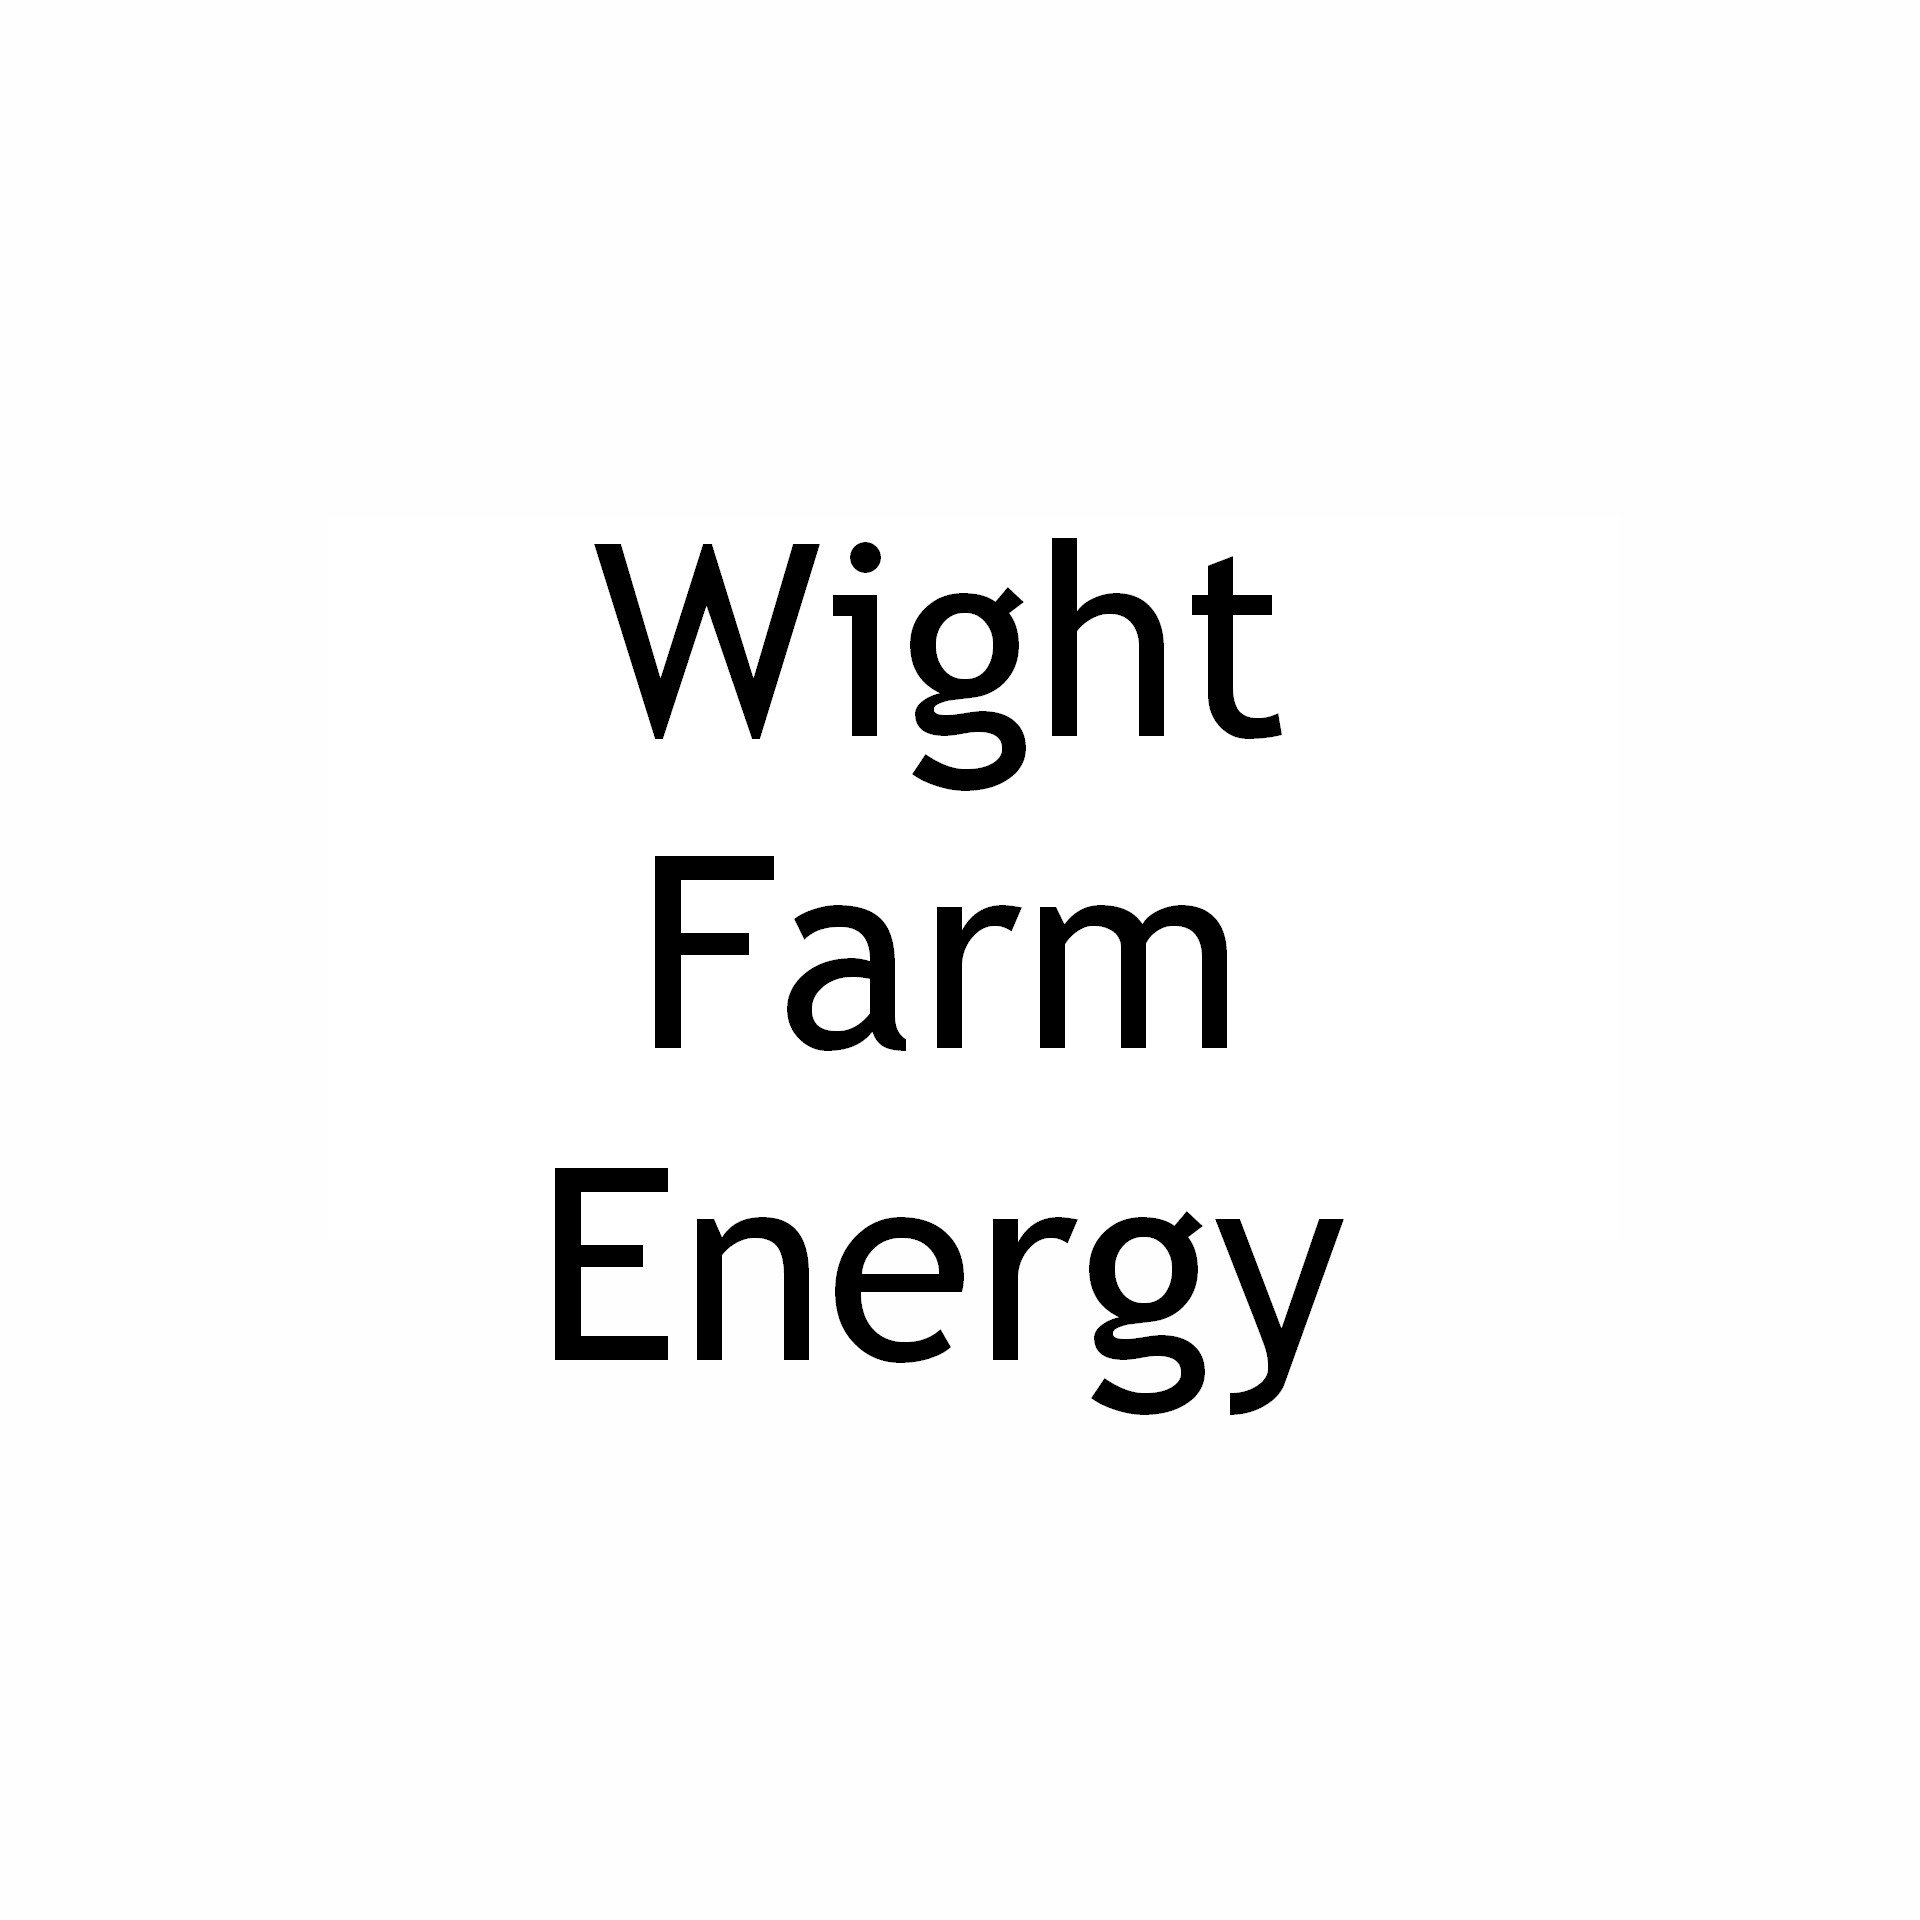 Wight Farm Energy is a customer of NDL Event Power Solutions